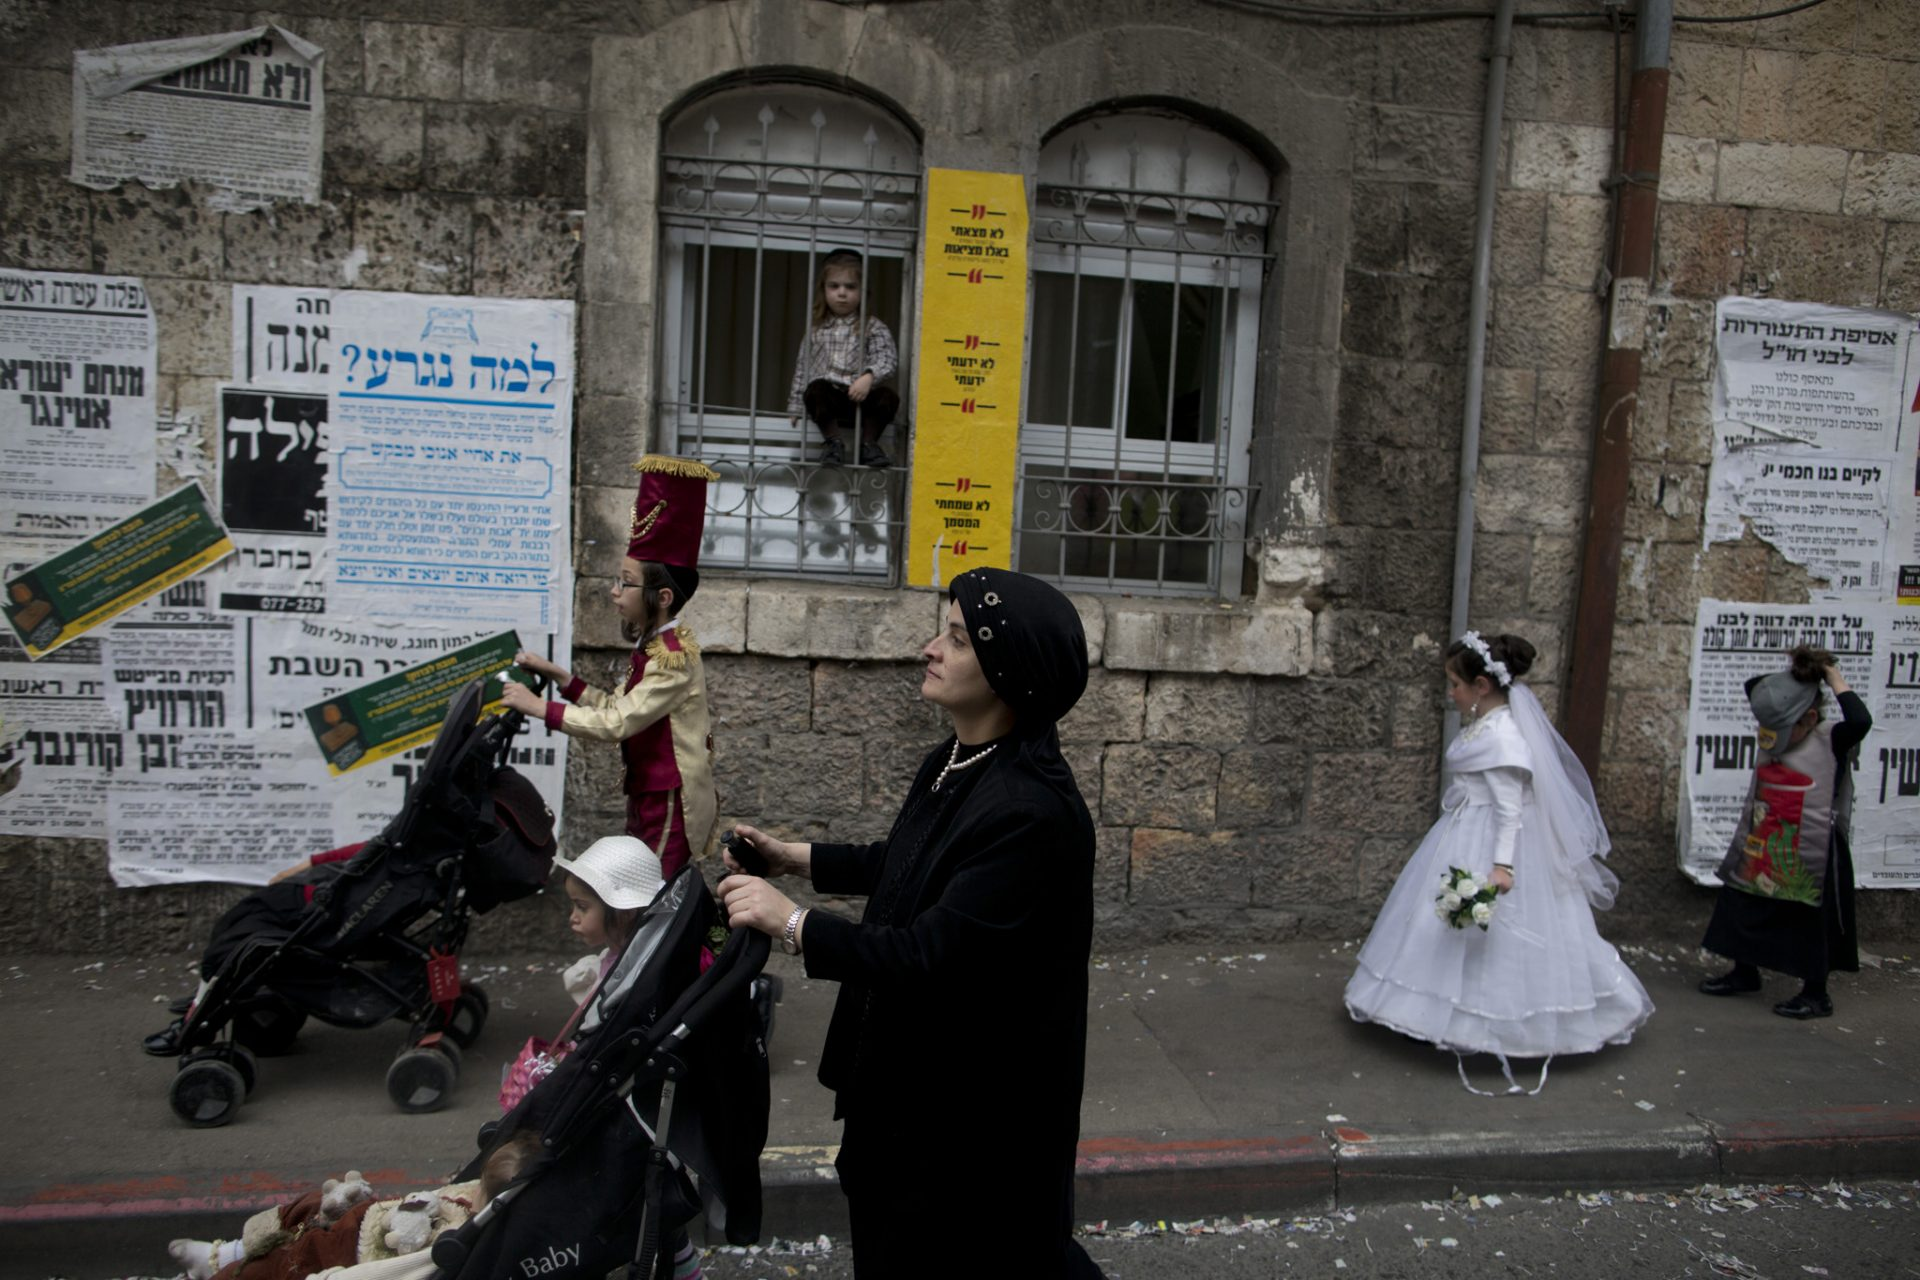 Celebrations For Jewish Holiday Purim